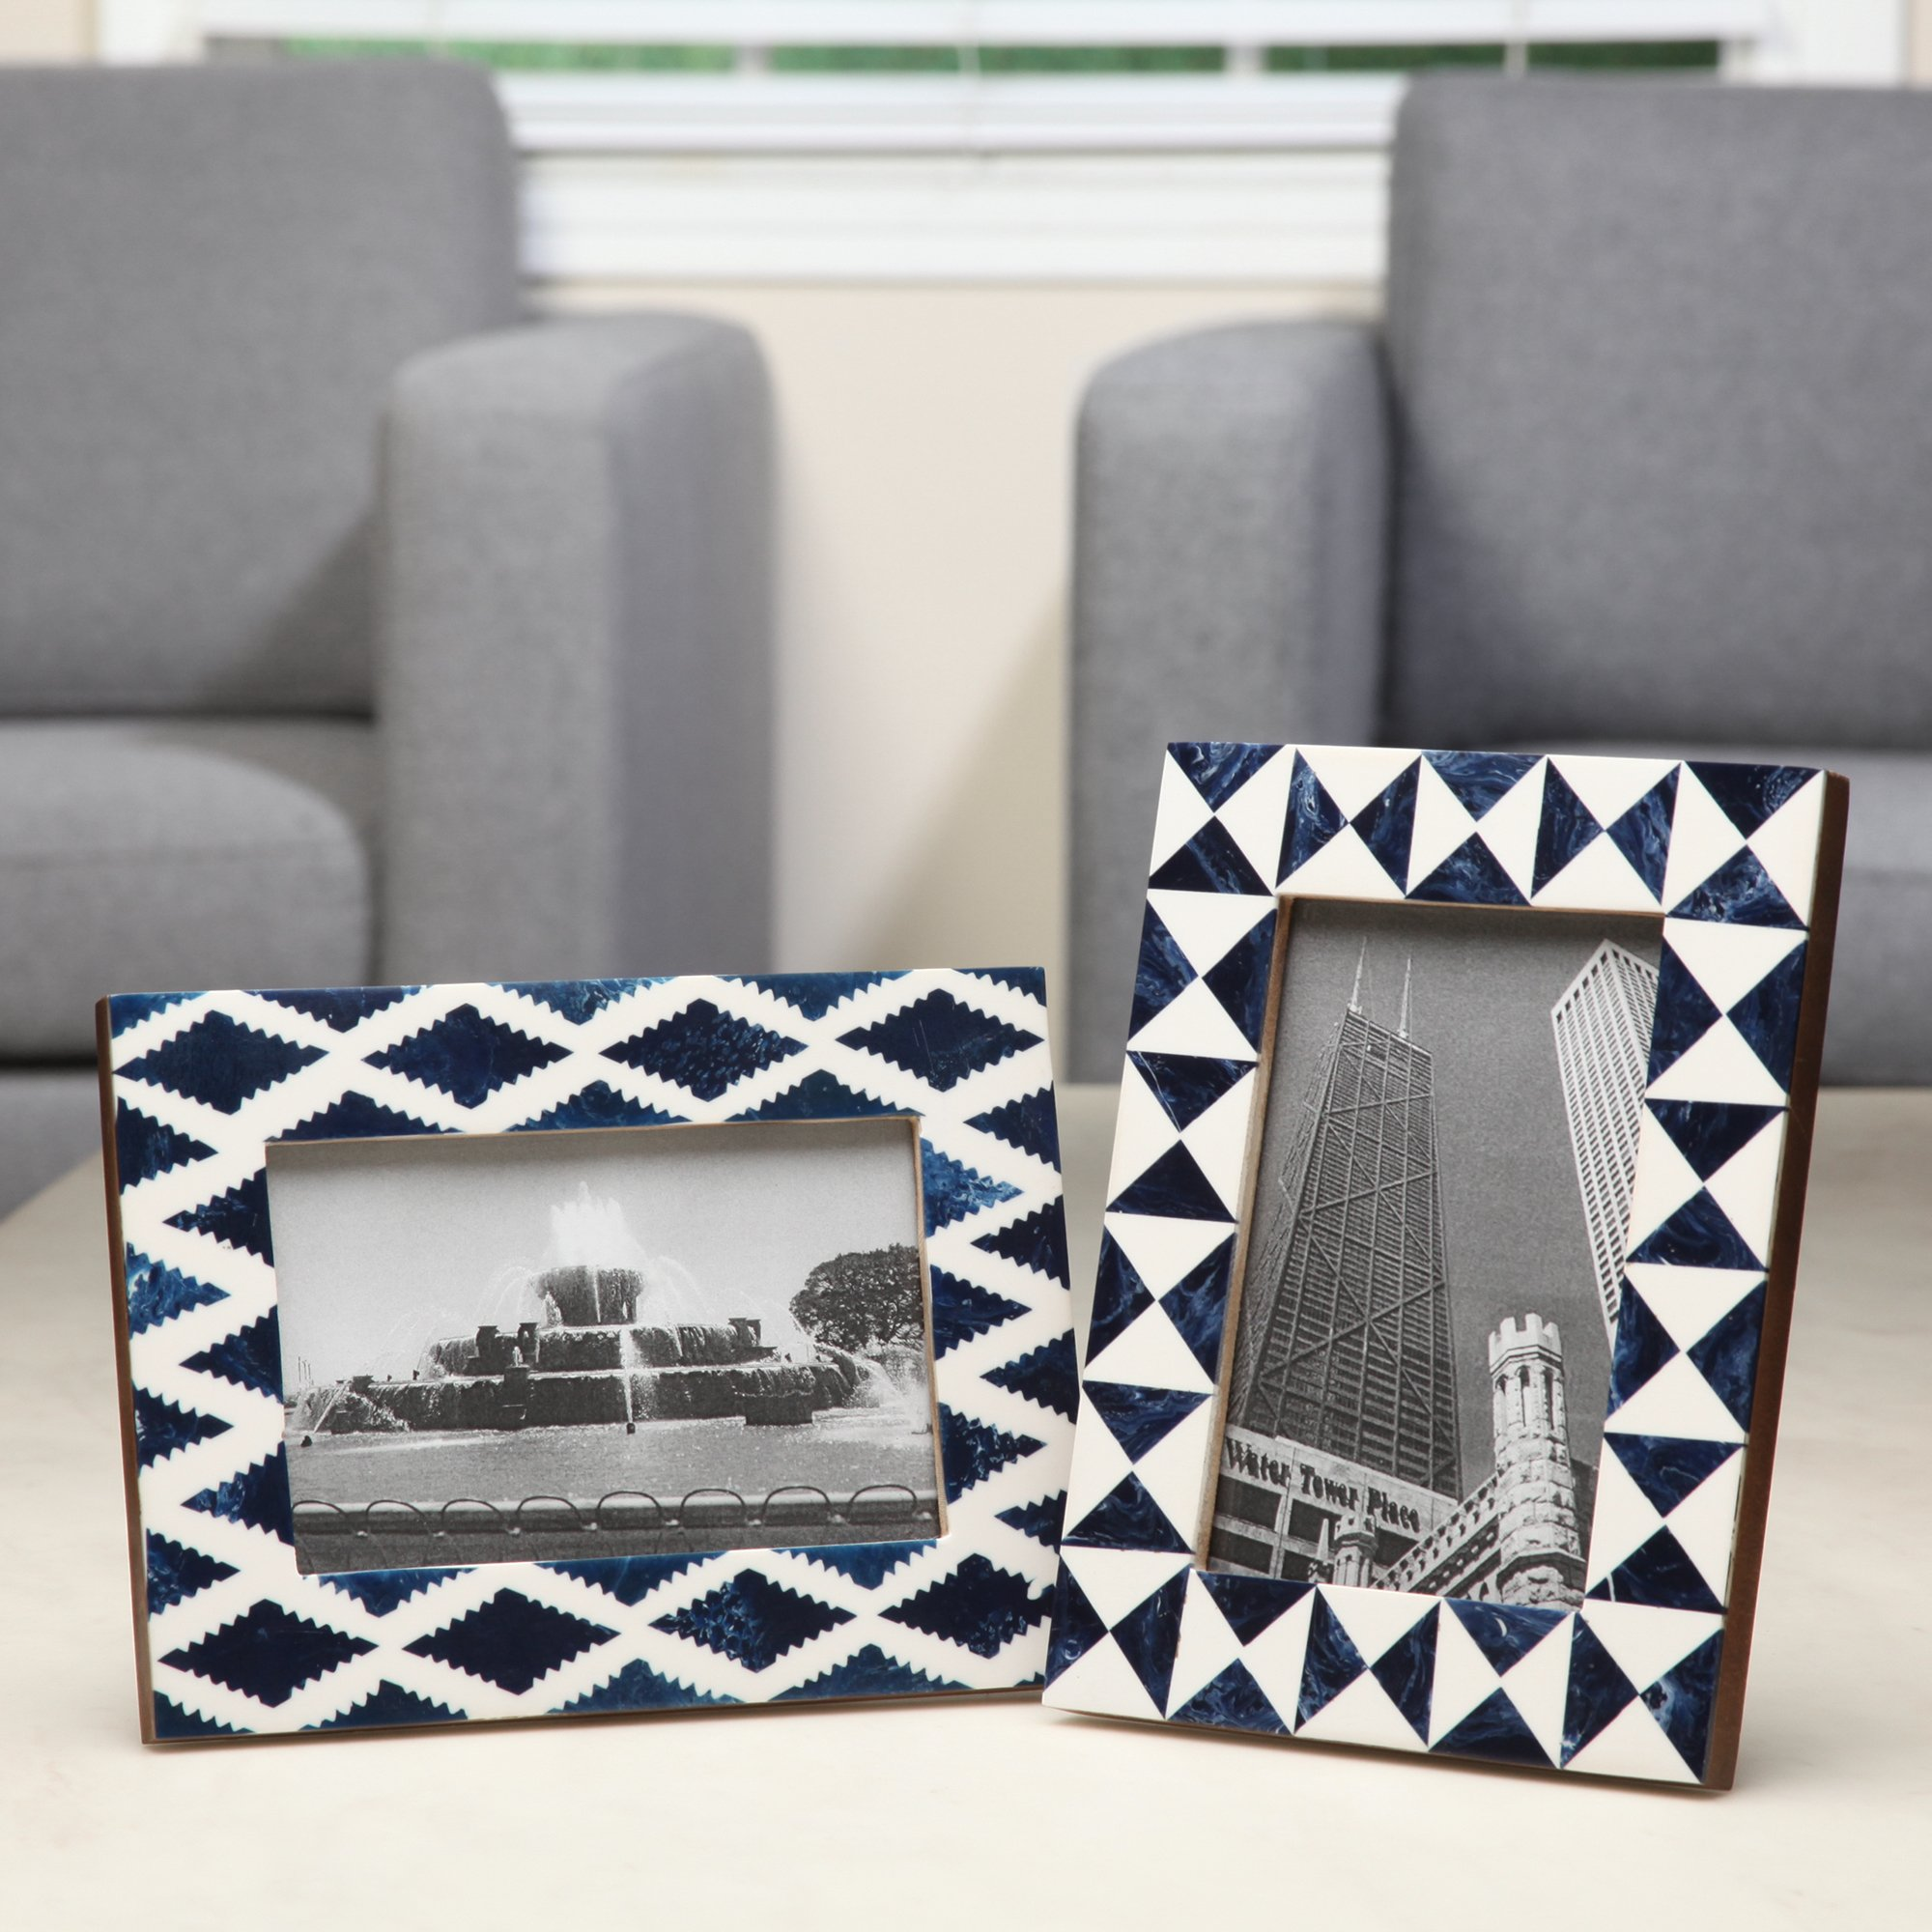 Hosley Indigo Geo Resin Tabletop Picture Frame, 4x6. Ideal Gift for Home, Wedding, Party. Home Office, Spa P2 by Hosley (Image #1)